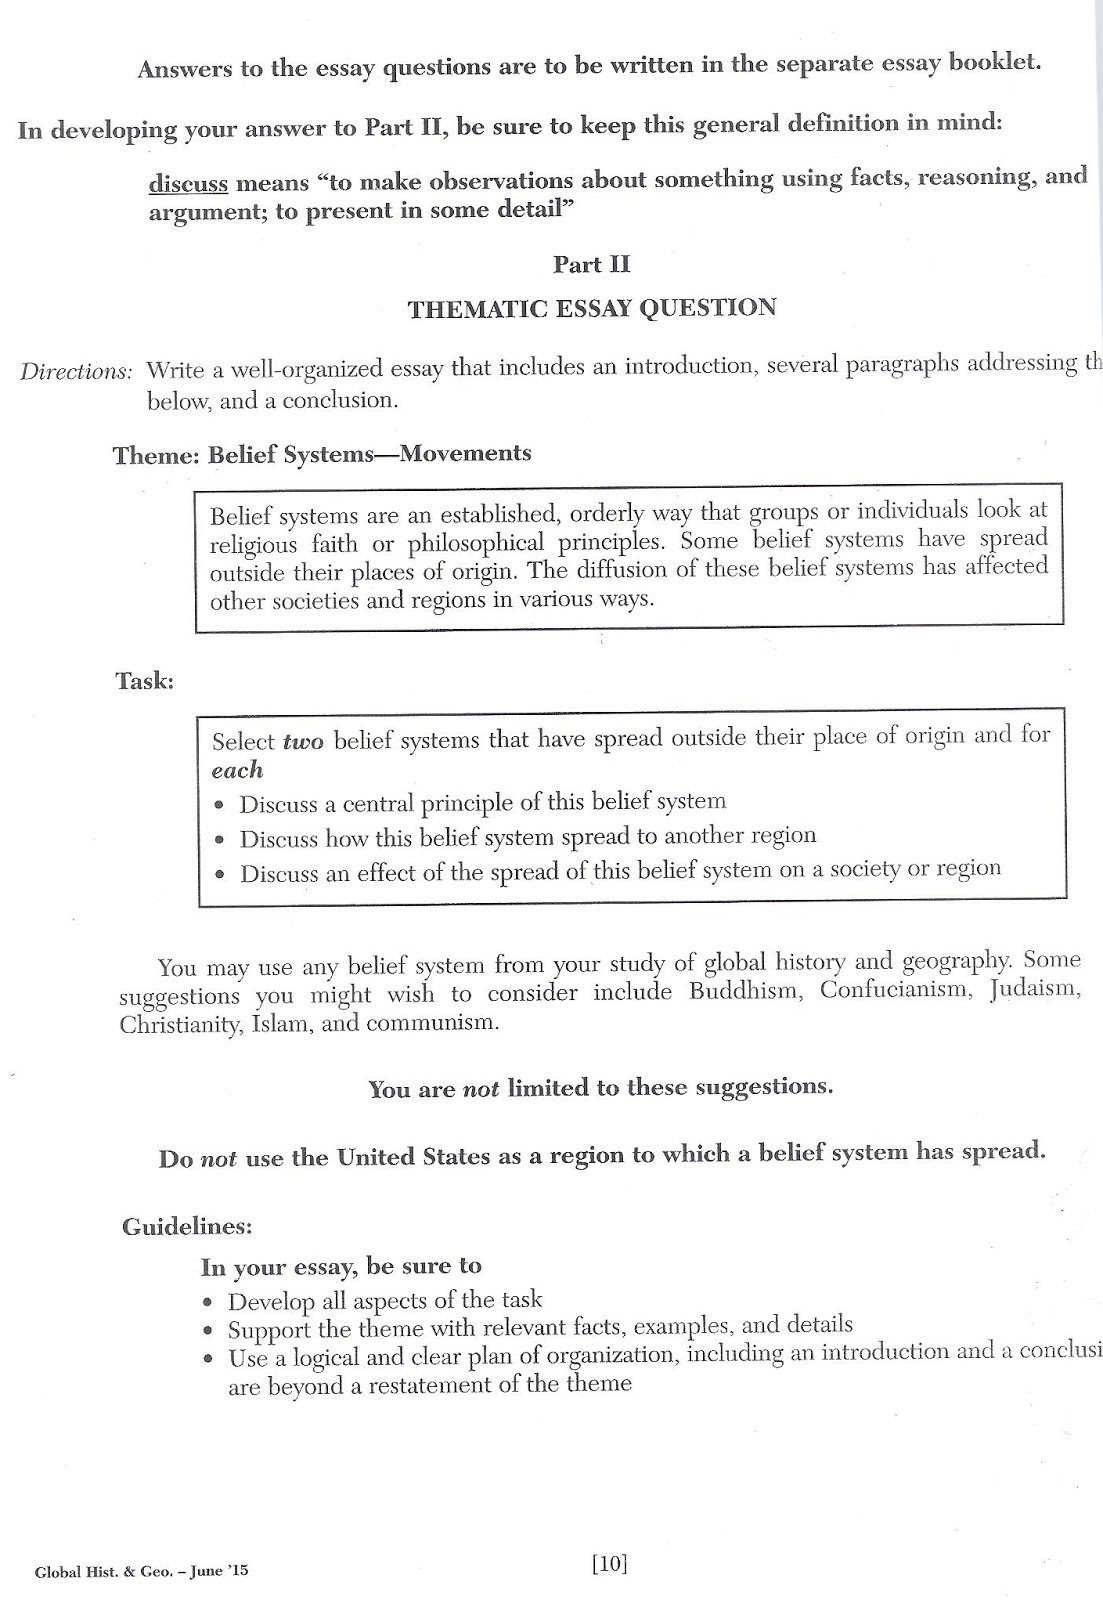 new york regents essay rubric New york state thematic essay scoring rubric 5 • shows a thorough understanding of the theme • addresses all aspects of the task.